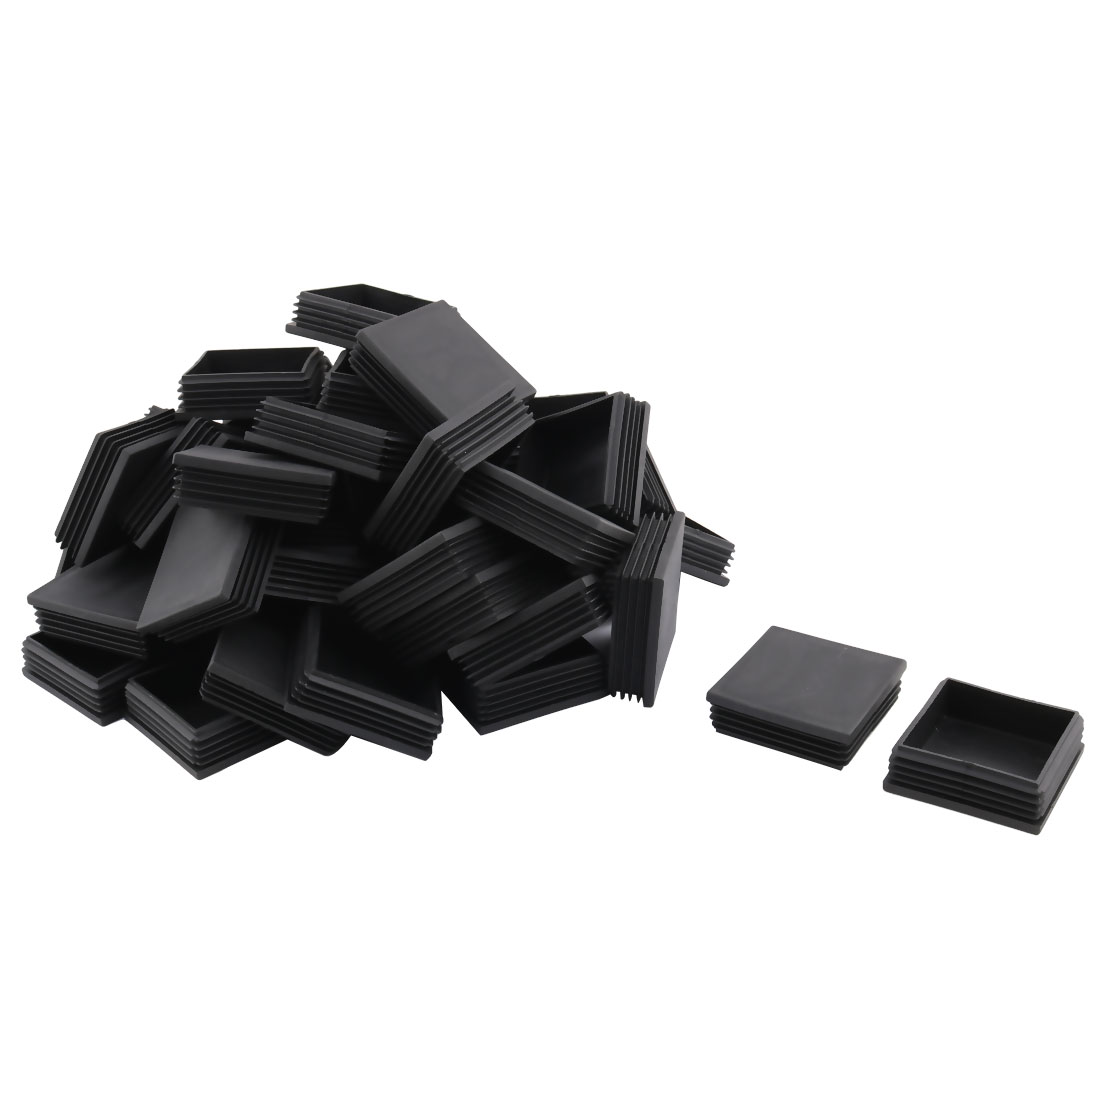 Plastic Square Design Tube Insert End Blanking Cover Cap Black 70 x 70mm 50pcs